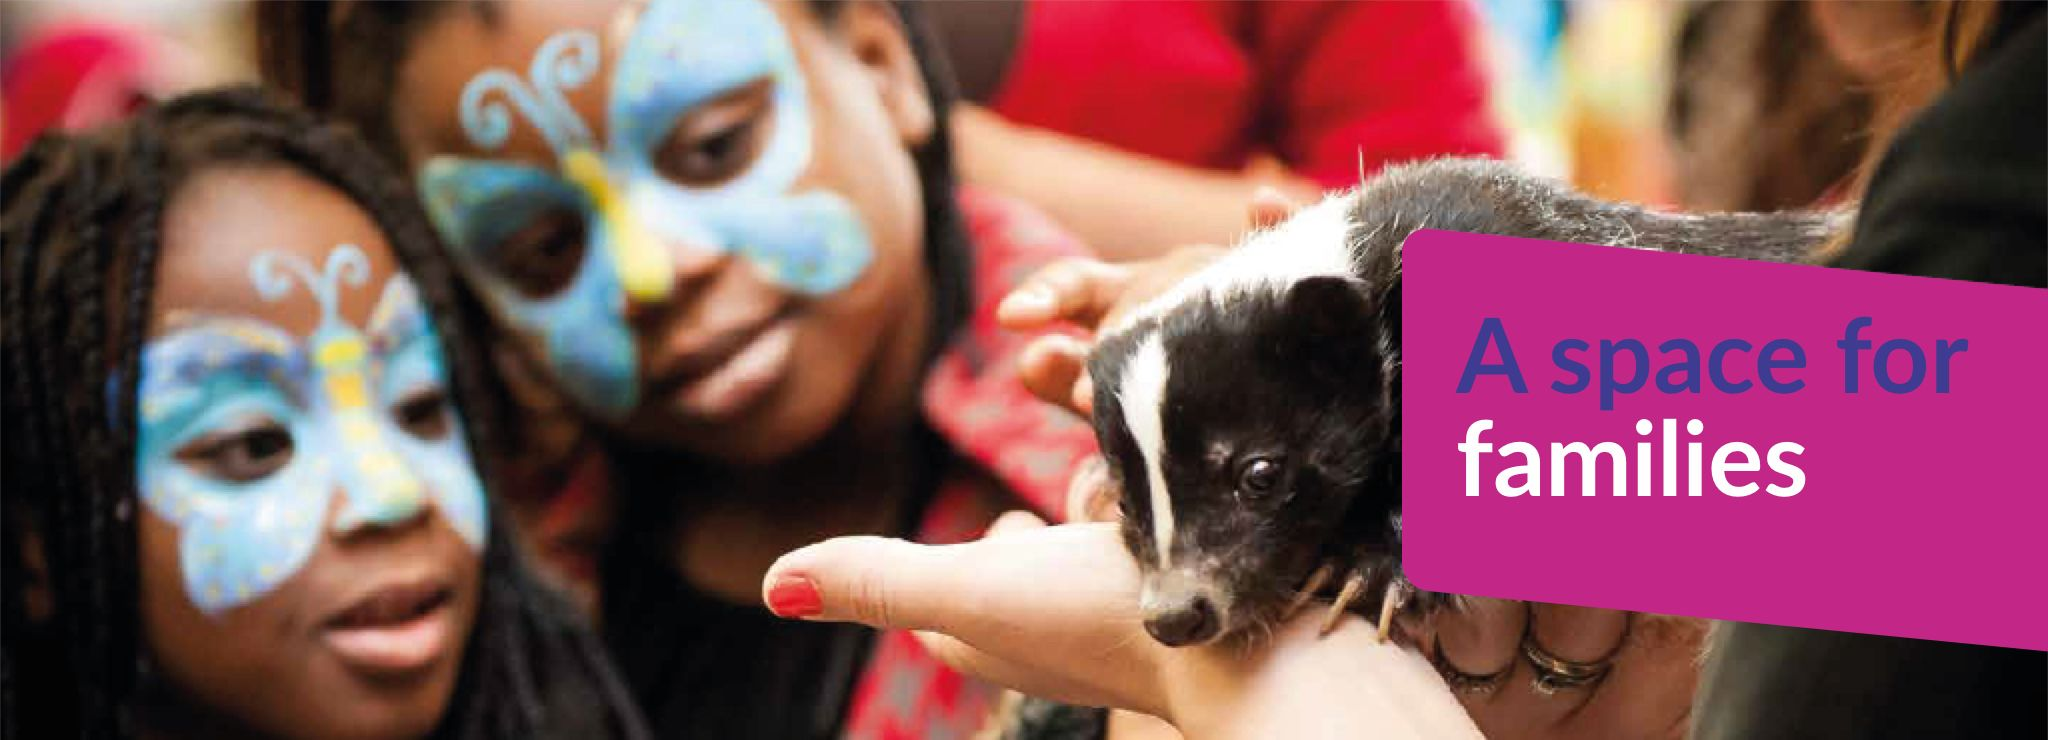 Text reads A space for families - image shows some children with facepaint on looking at a baby skunk